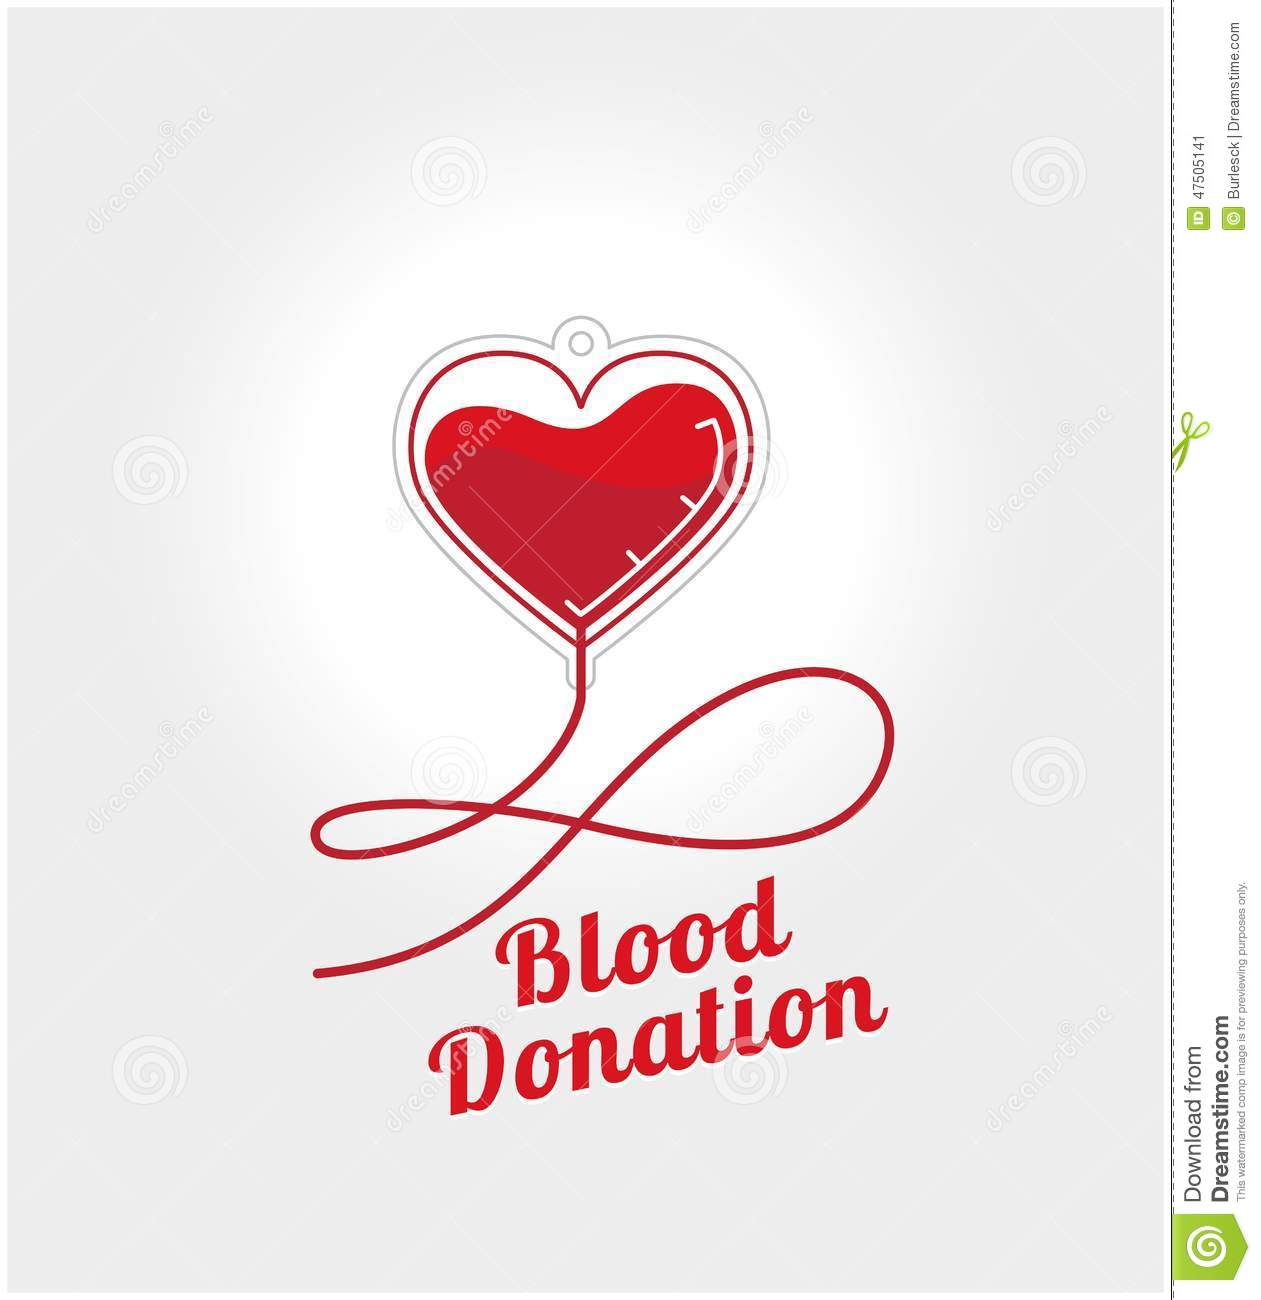 Poster design on blood donation - Donate Blood Logo Stock Image